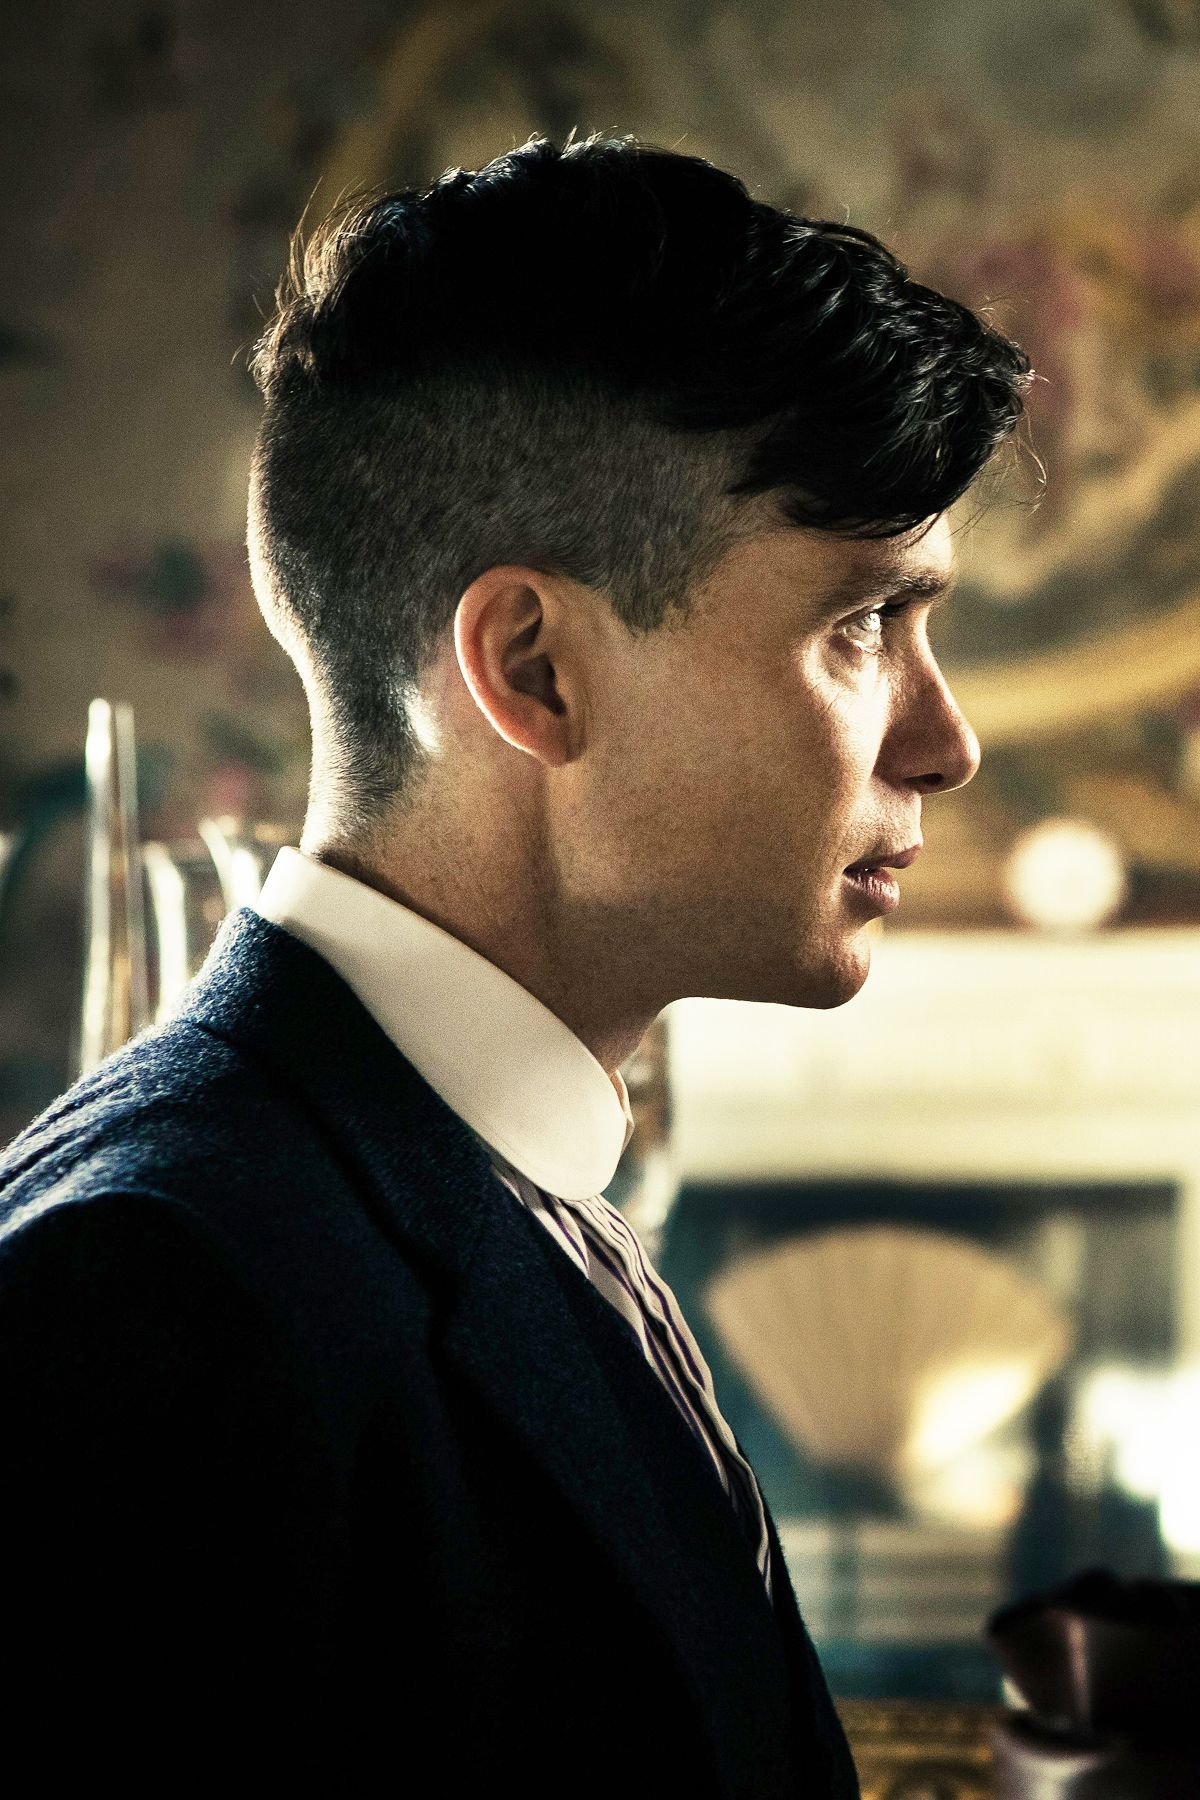 Cillian Murphy As Thomas Shelby In Peaky Blinders S5 Peaky Blinder Haircut Peaky Blinders Hair Cillian Murphy Peaky Blinders